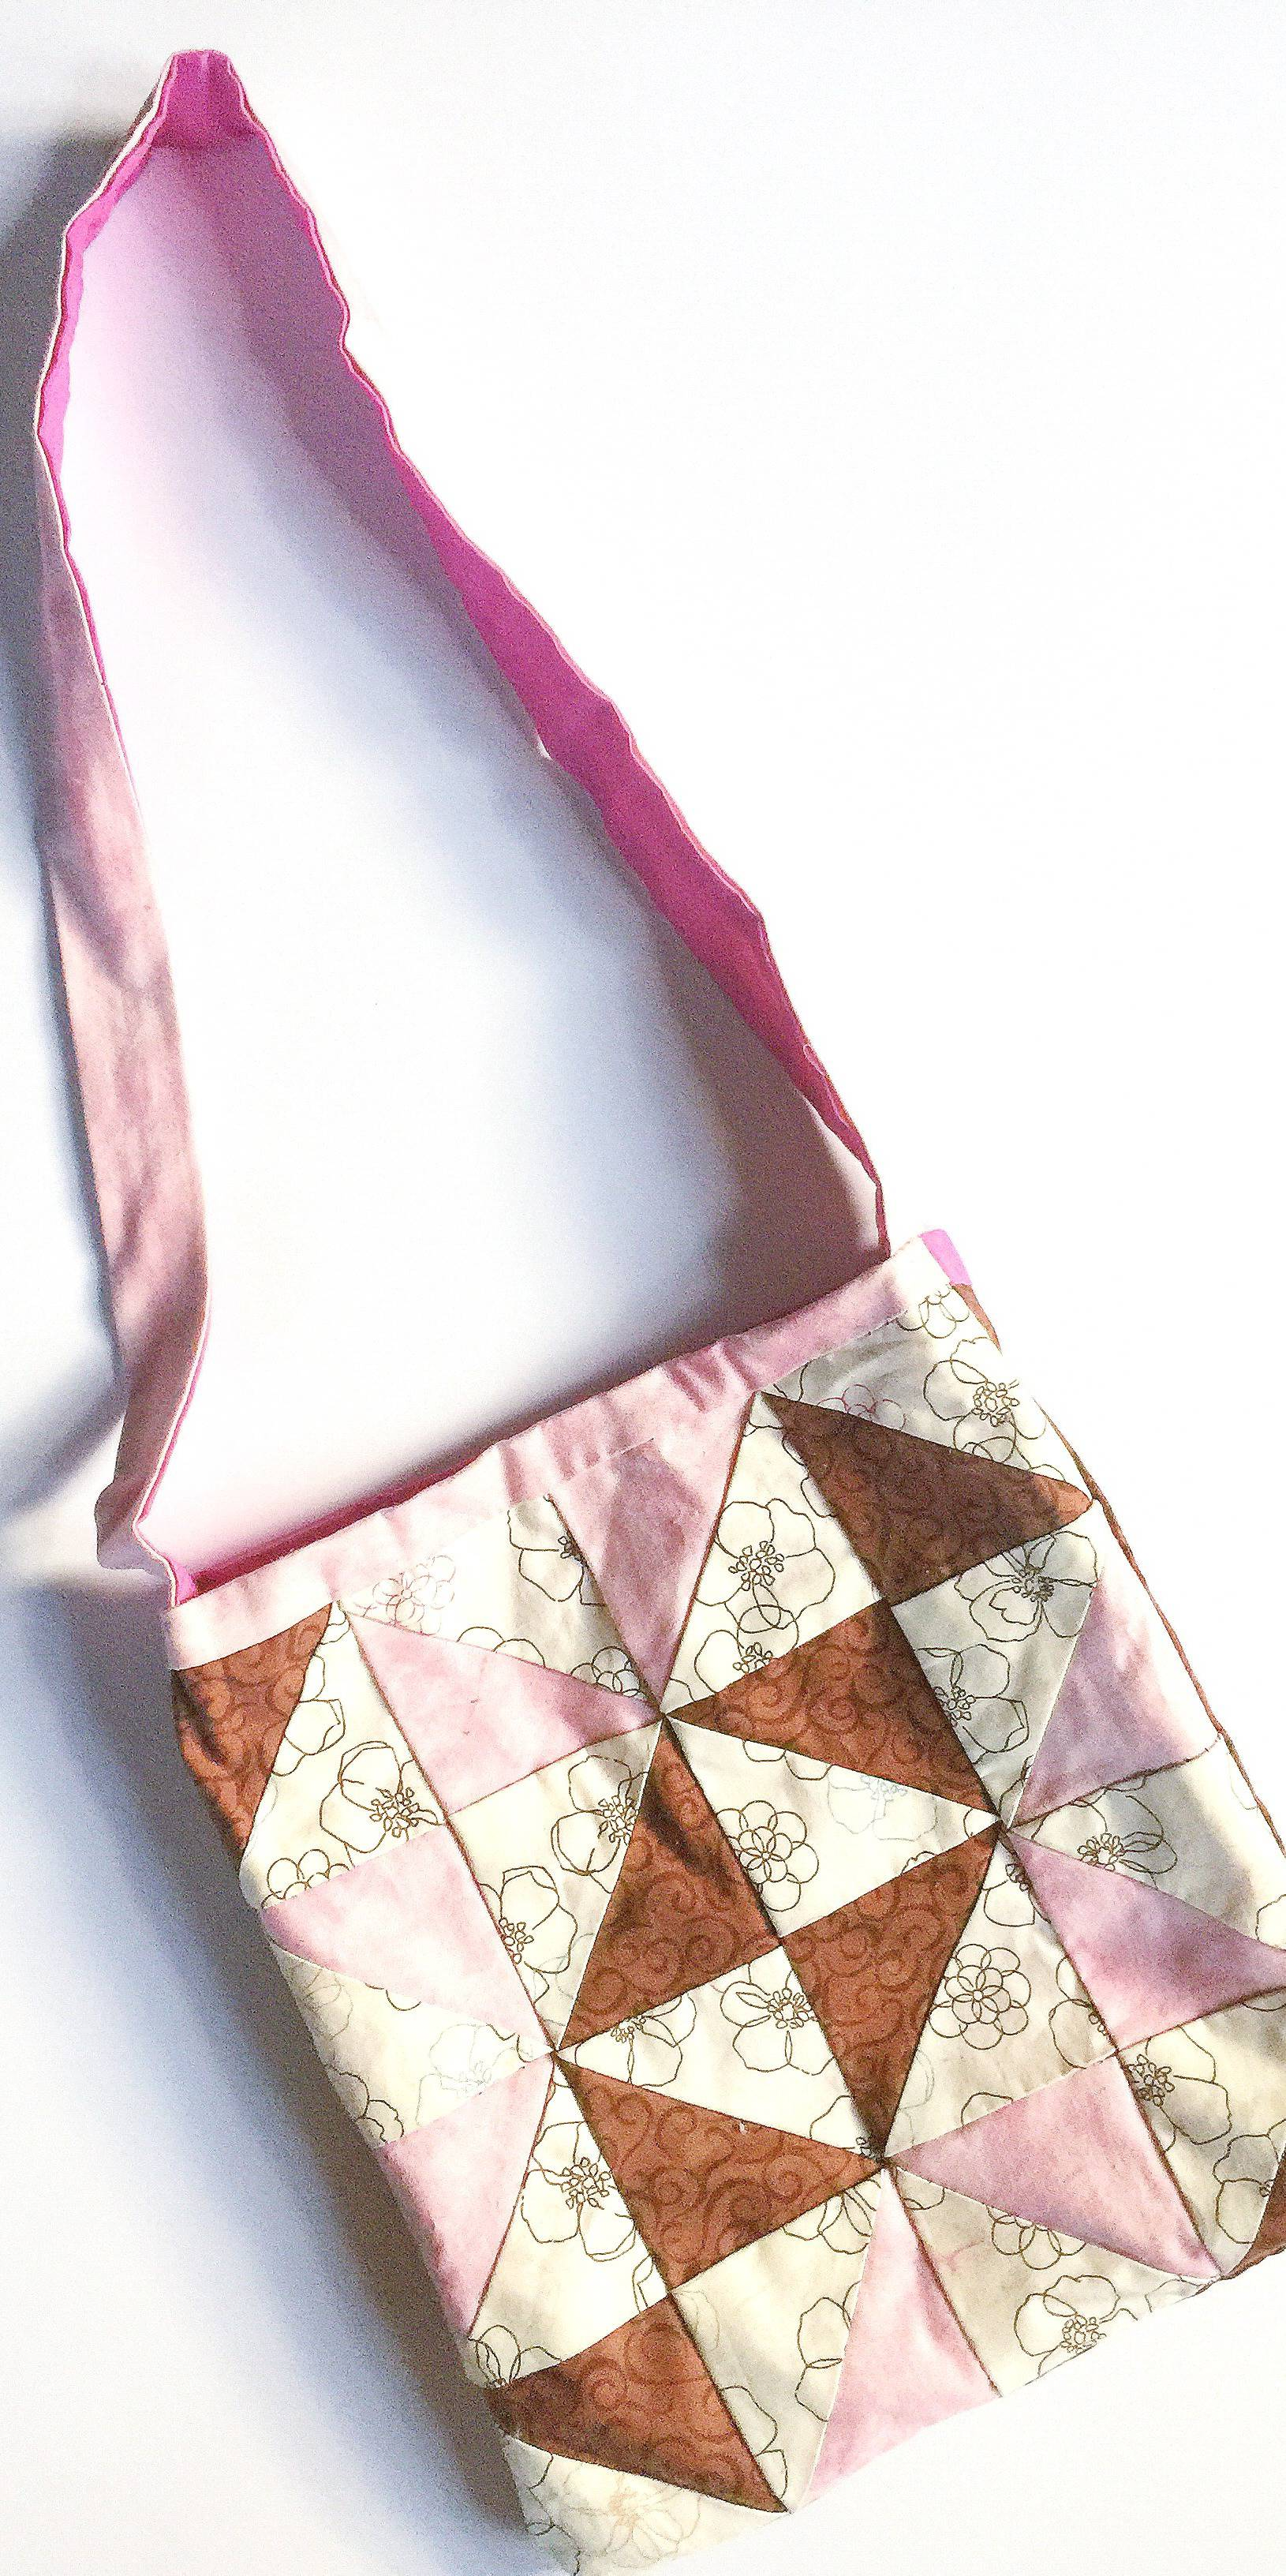 Flashback Friday: handsewn quilted purse from the Klutz Quilting book